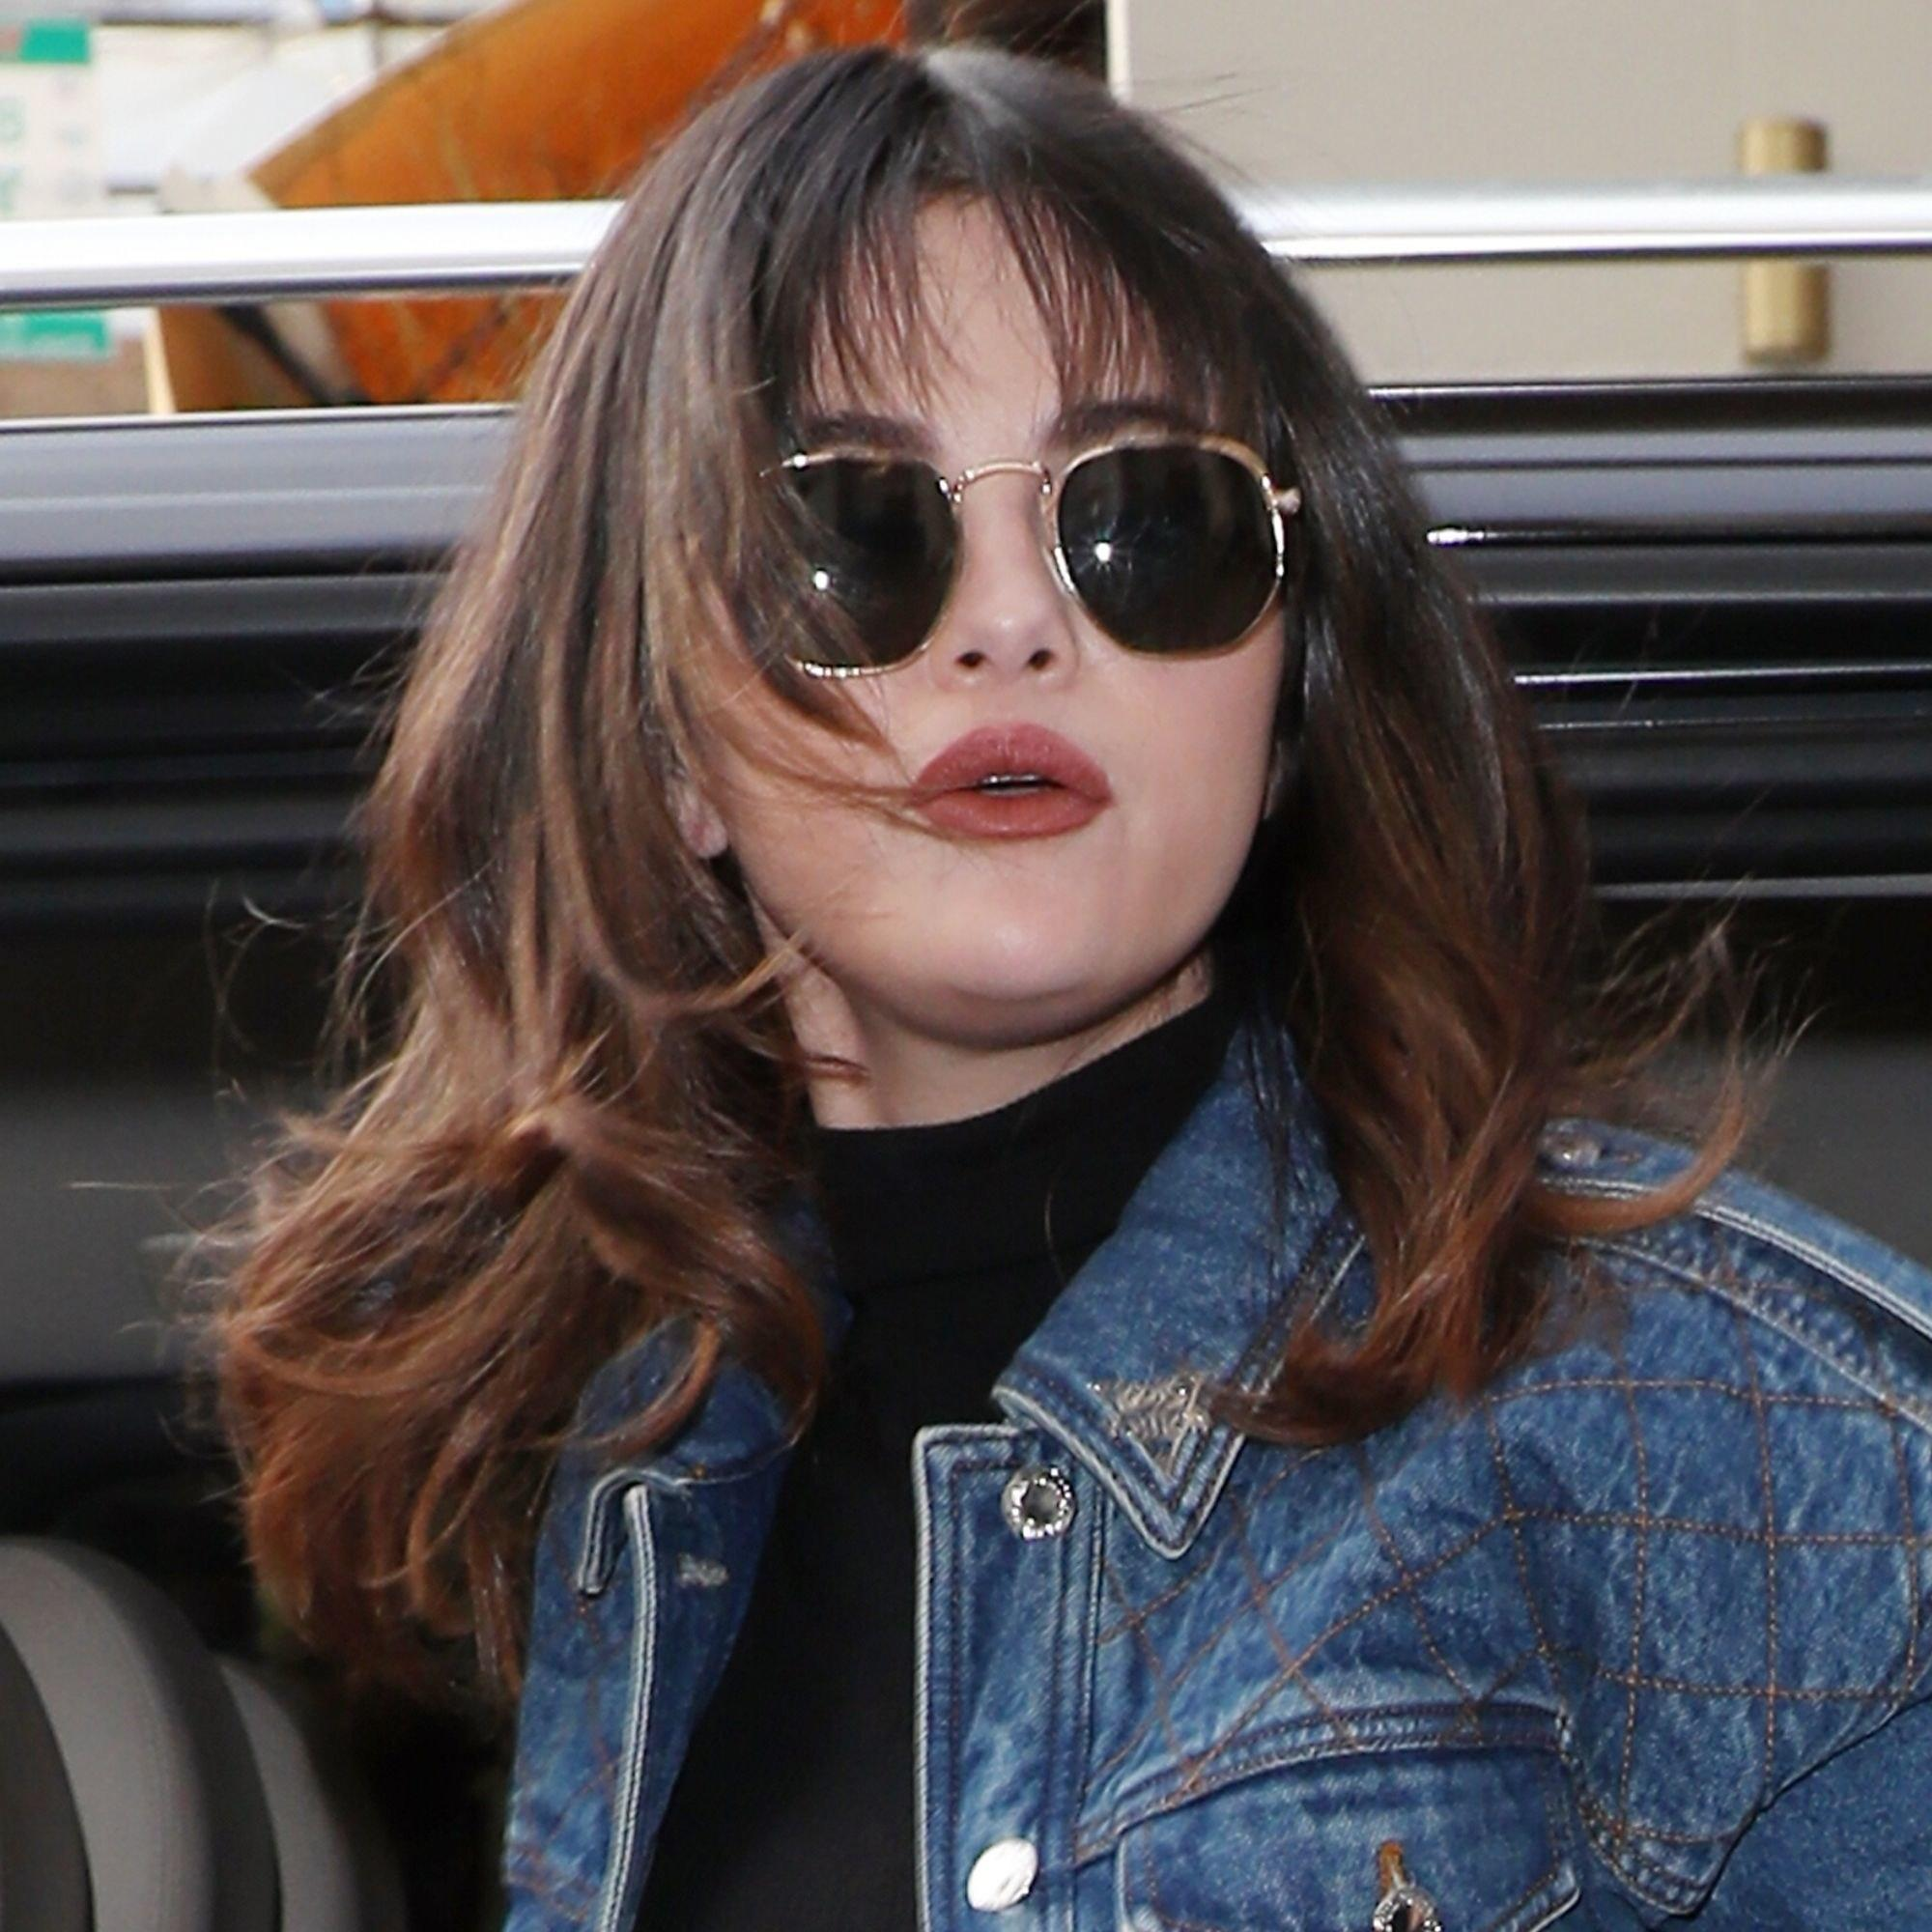 "Selena Gomez <a href=""https://www.allure.com/story/selena-gomez-shag-haircut-bangs?mbid=synd_yahoo_rss"" rel=""nofollow noopener"" target=""_blank"" data-ylk=""slk:recently stepped out"" class=""link rapid-noclick-resp"">recently stepped out</a> in London with her take on the 2020 shag. ""Long shags are great for girls who love movement and love longer hair,"" says hairstylist <a href=""https://www.instagram.com/tedgibson/?hl=en"" rel=""nofollow noopener"" target=""_blank"" data-ylk=""slk:Ted Gibson"" class=""link rapid-noclick-resp"">Ted Gibson</a>. ""The thing that's great about the modern shag is the texture. In the '70s it was straight."" This new version of the shag gives you more space for texture. We love the <a href=""https://www.allure.com/story/hair-flip-trend?mbid=synd_yahoo_rss"" rel=""nofollow noopener"" target=""_blank"" data-ylk=""slk:flipped-up ends"" class=""link rapid-noclick-resp"">flipped-up ends</a> Gomez has here, which add a fresh touch to the classic style."